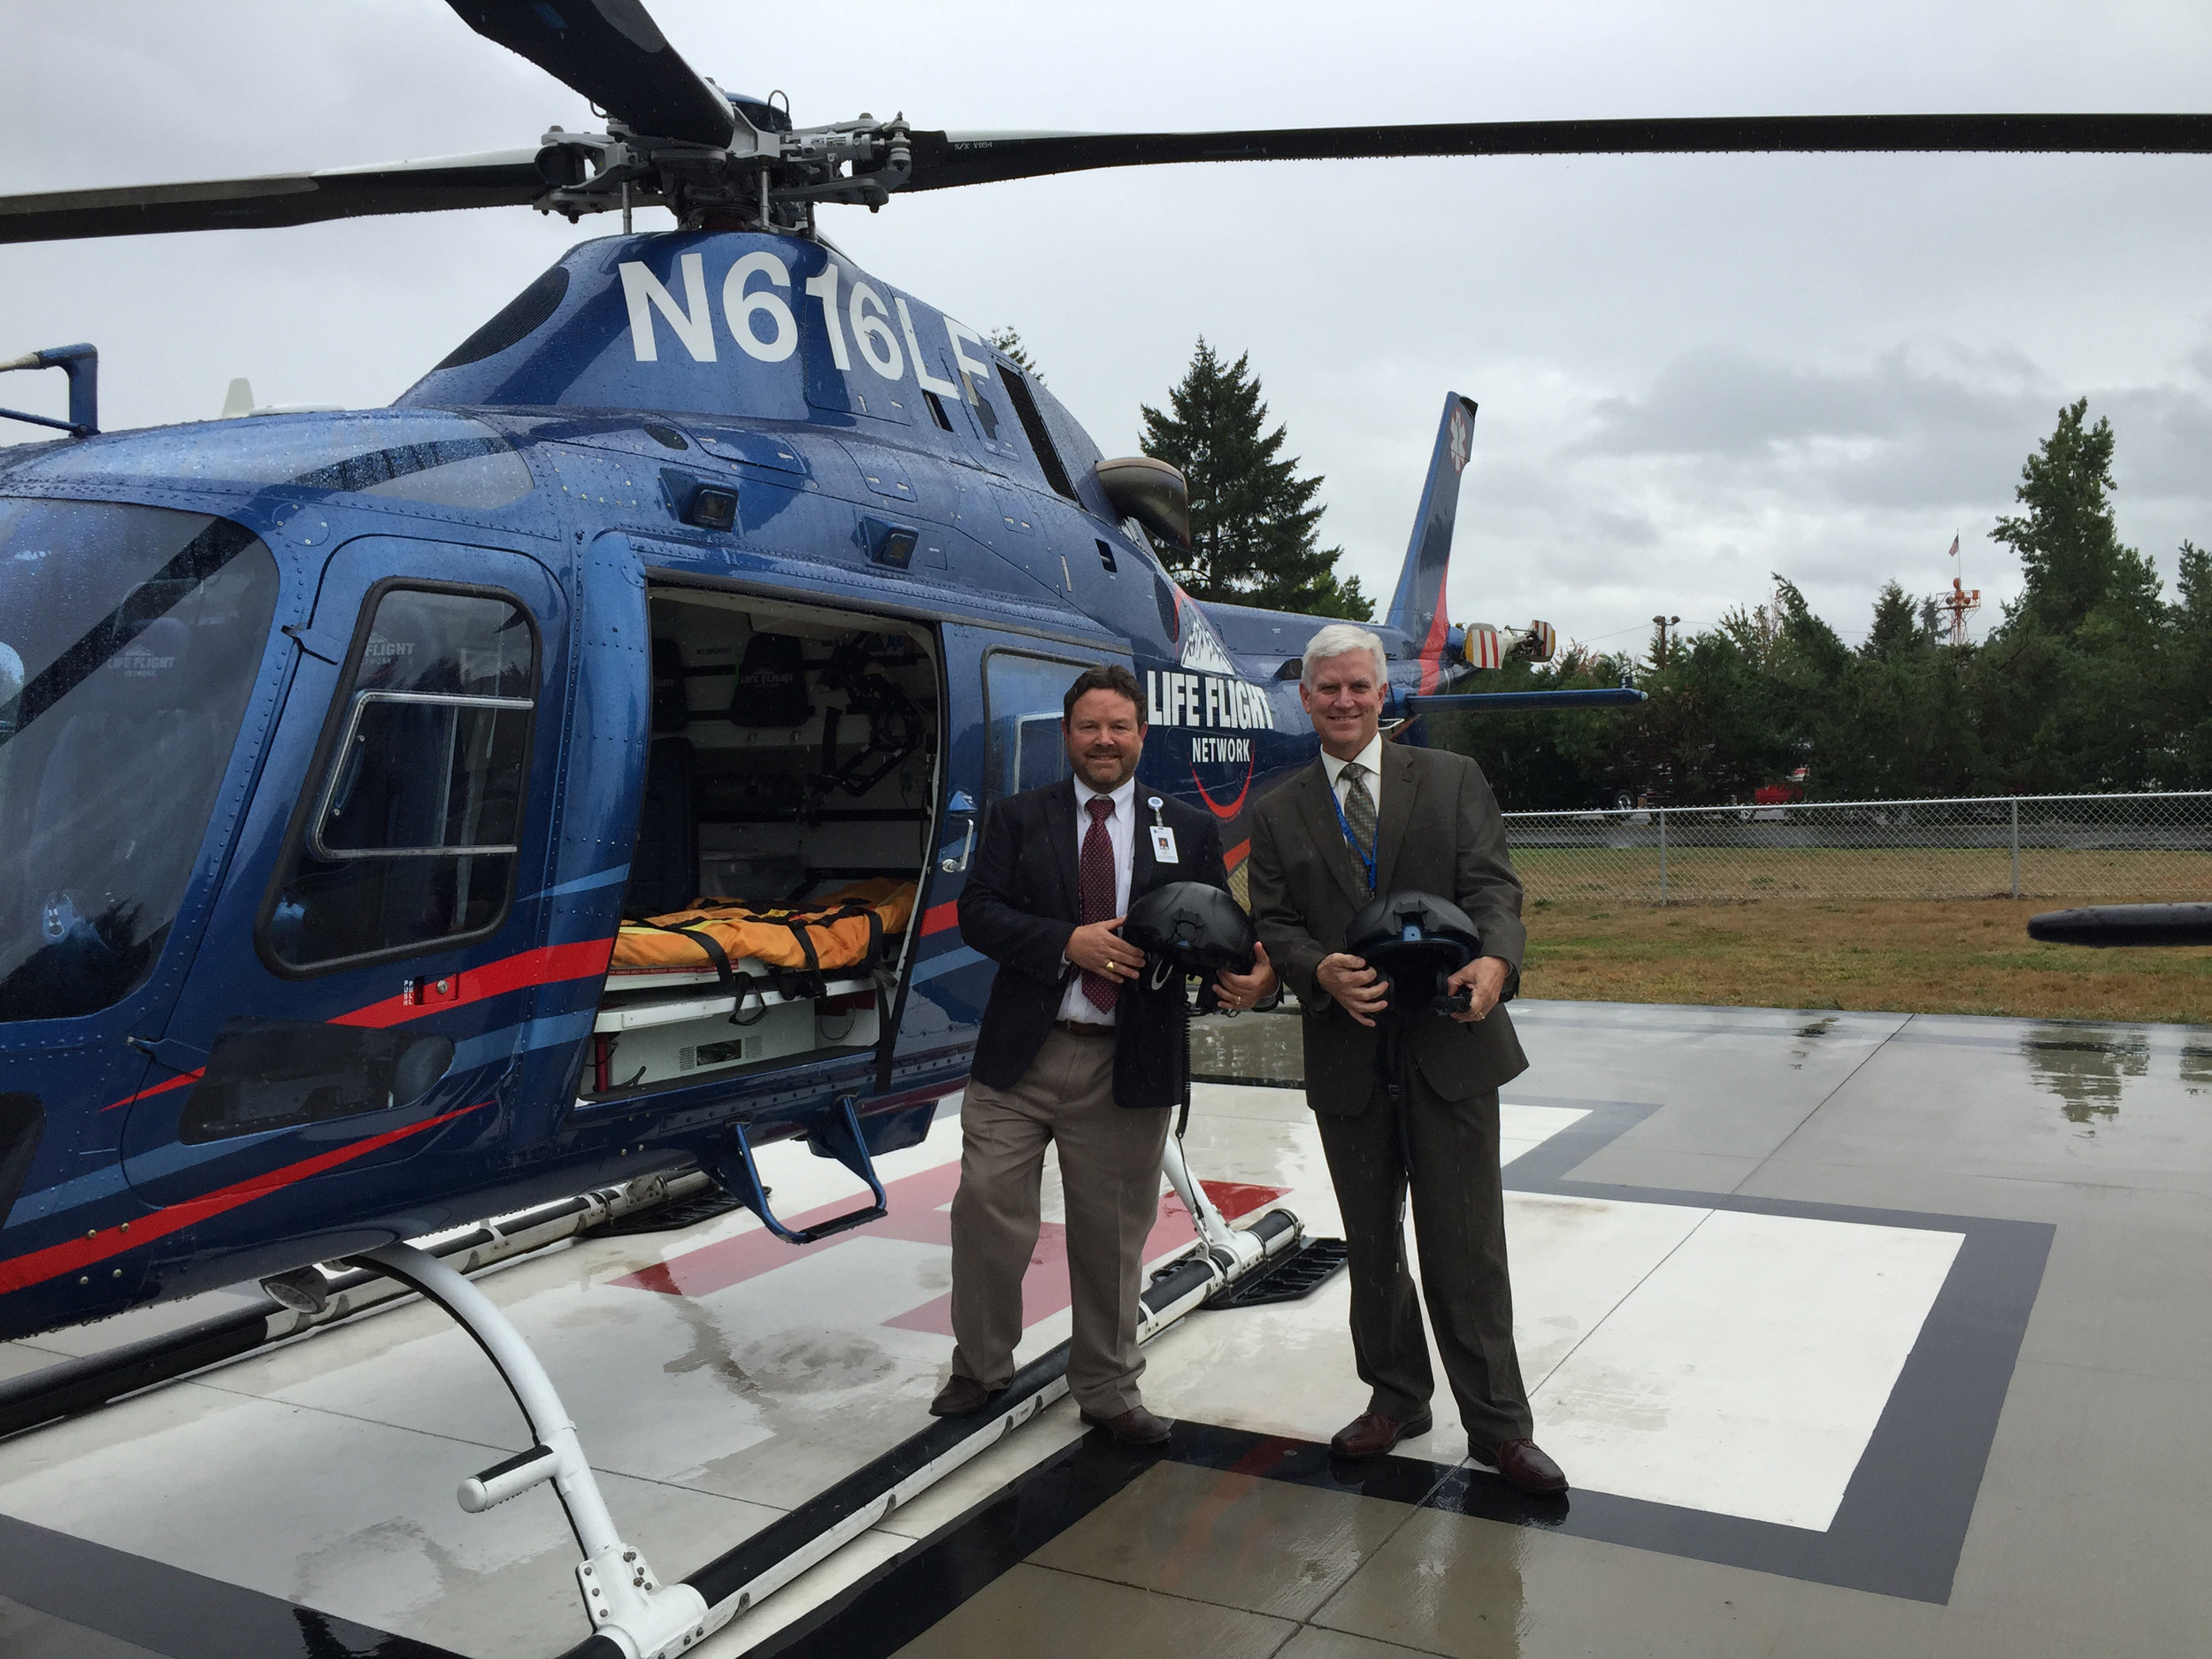 Rand O'Leary with Chief Administrative Officer Tim Herrmann launches New Life Flight service for the Cottage Grove Community.